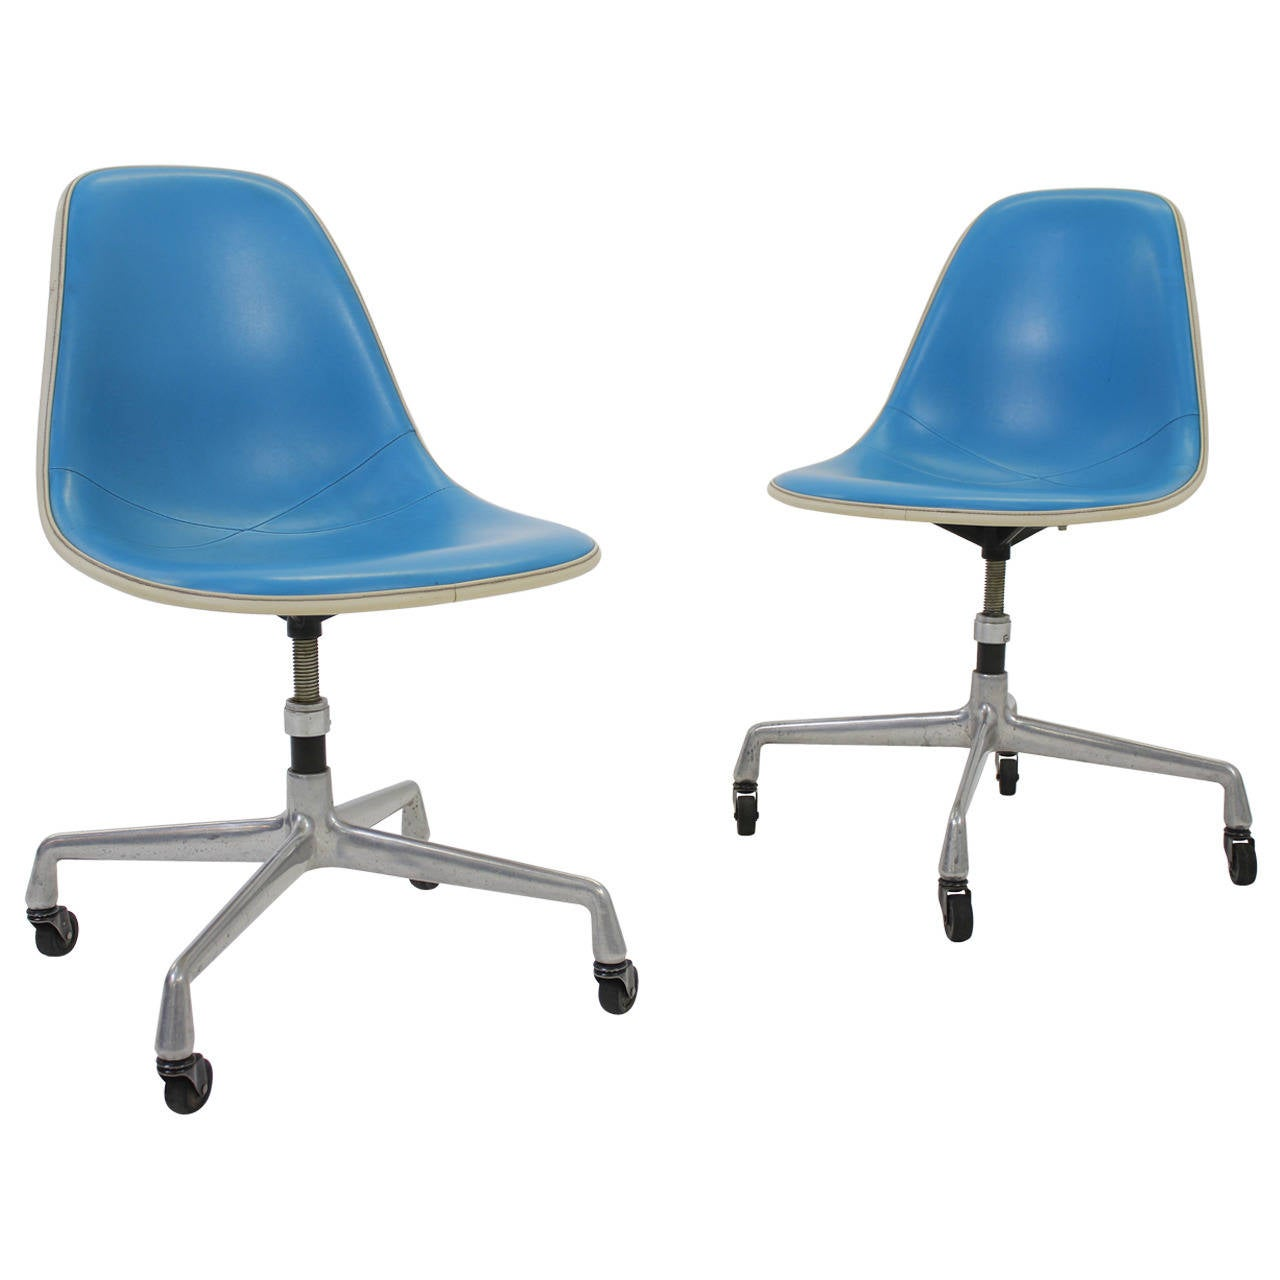 Rare Herman Miller Adjustable Rolling Desk Chairs 1960s